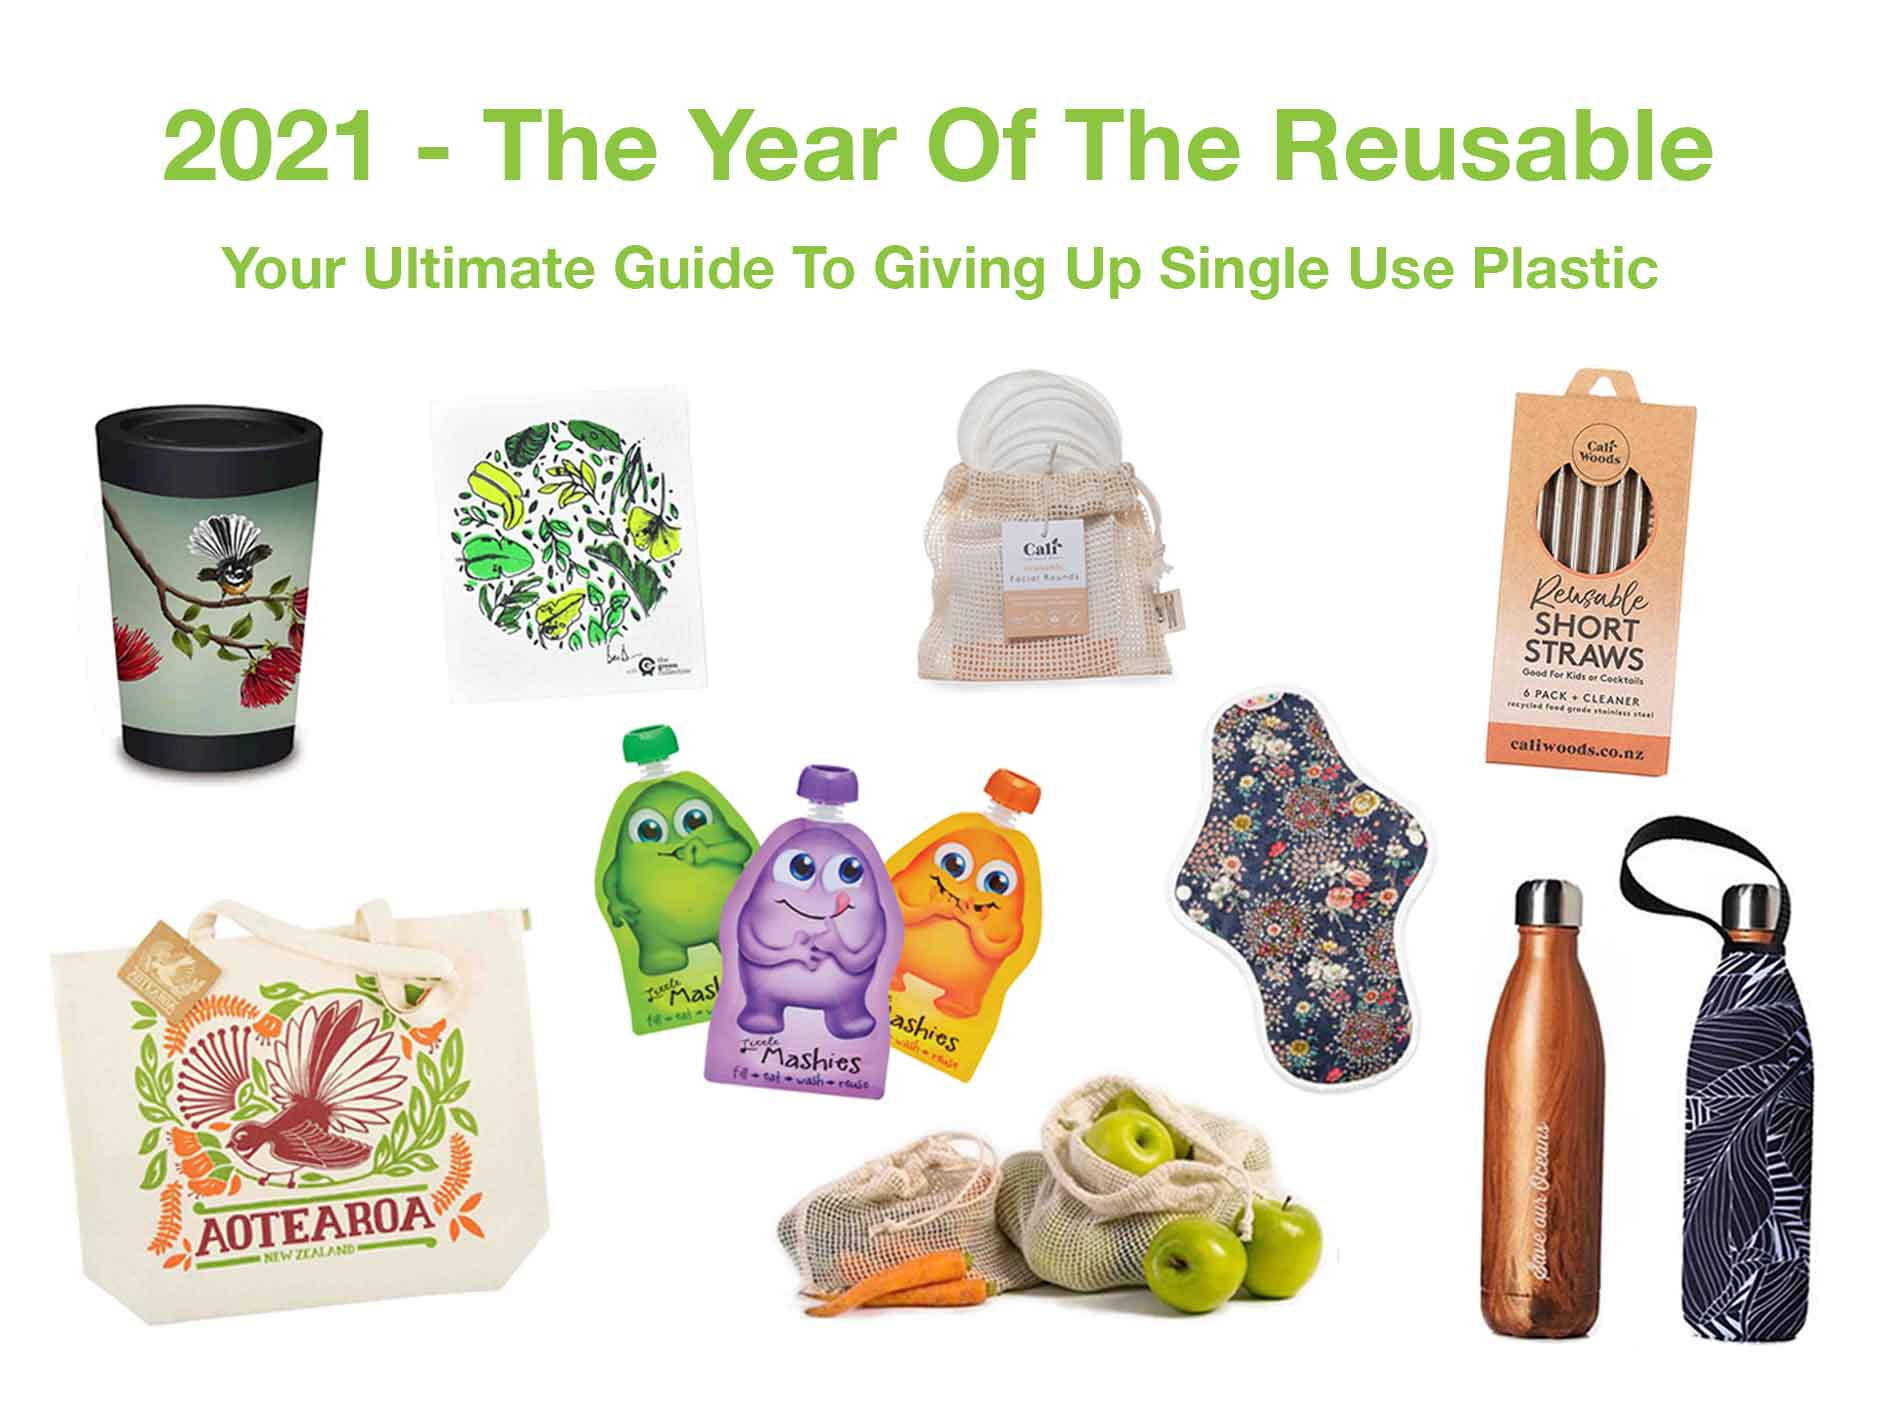 Title reads - 2021 The Year of the Reusable. Images below title include a reusable coffee cup, water bottle, dish cloth, make up pads, bags, food, pouches, straws and cotton pads.